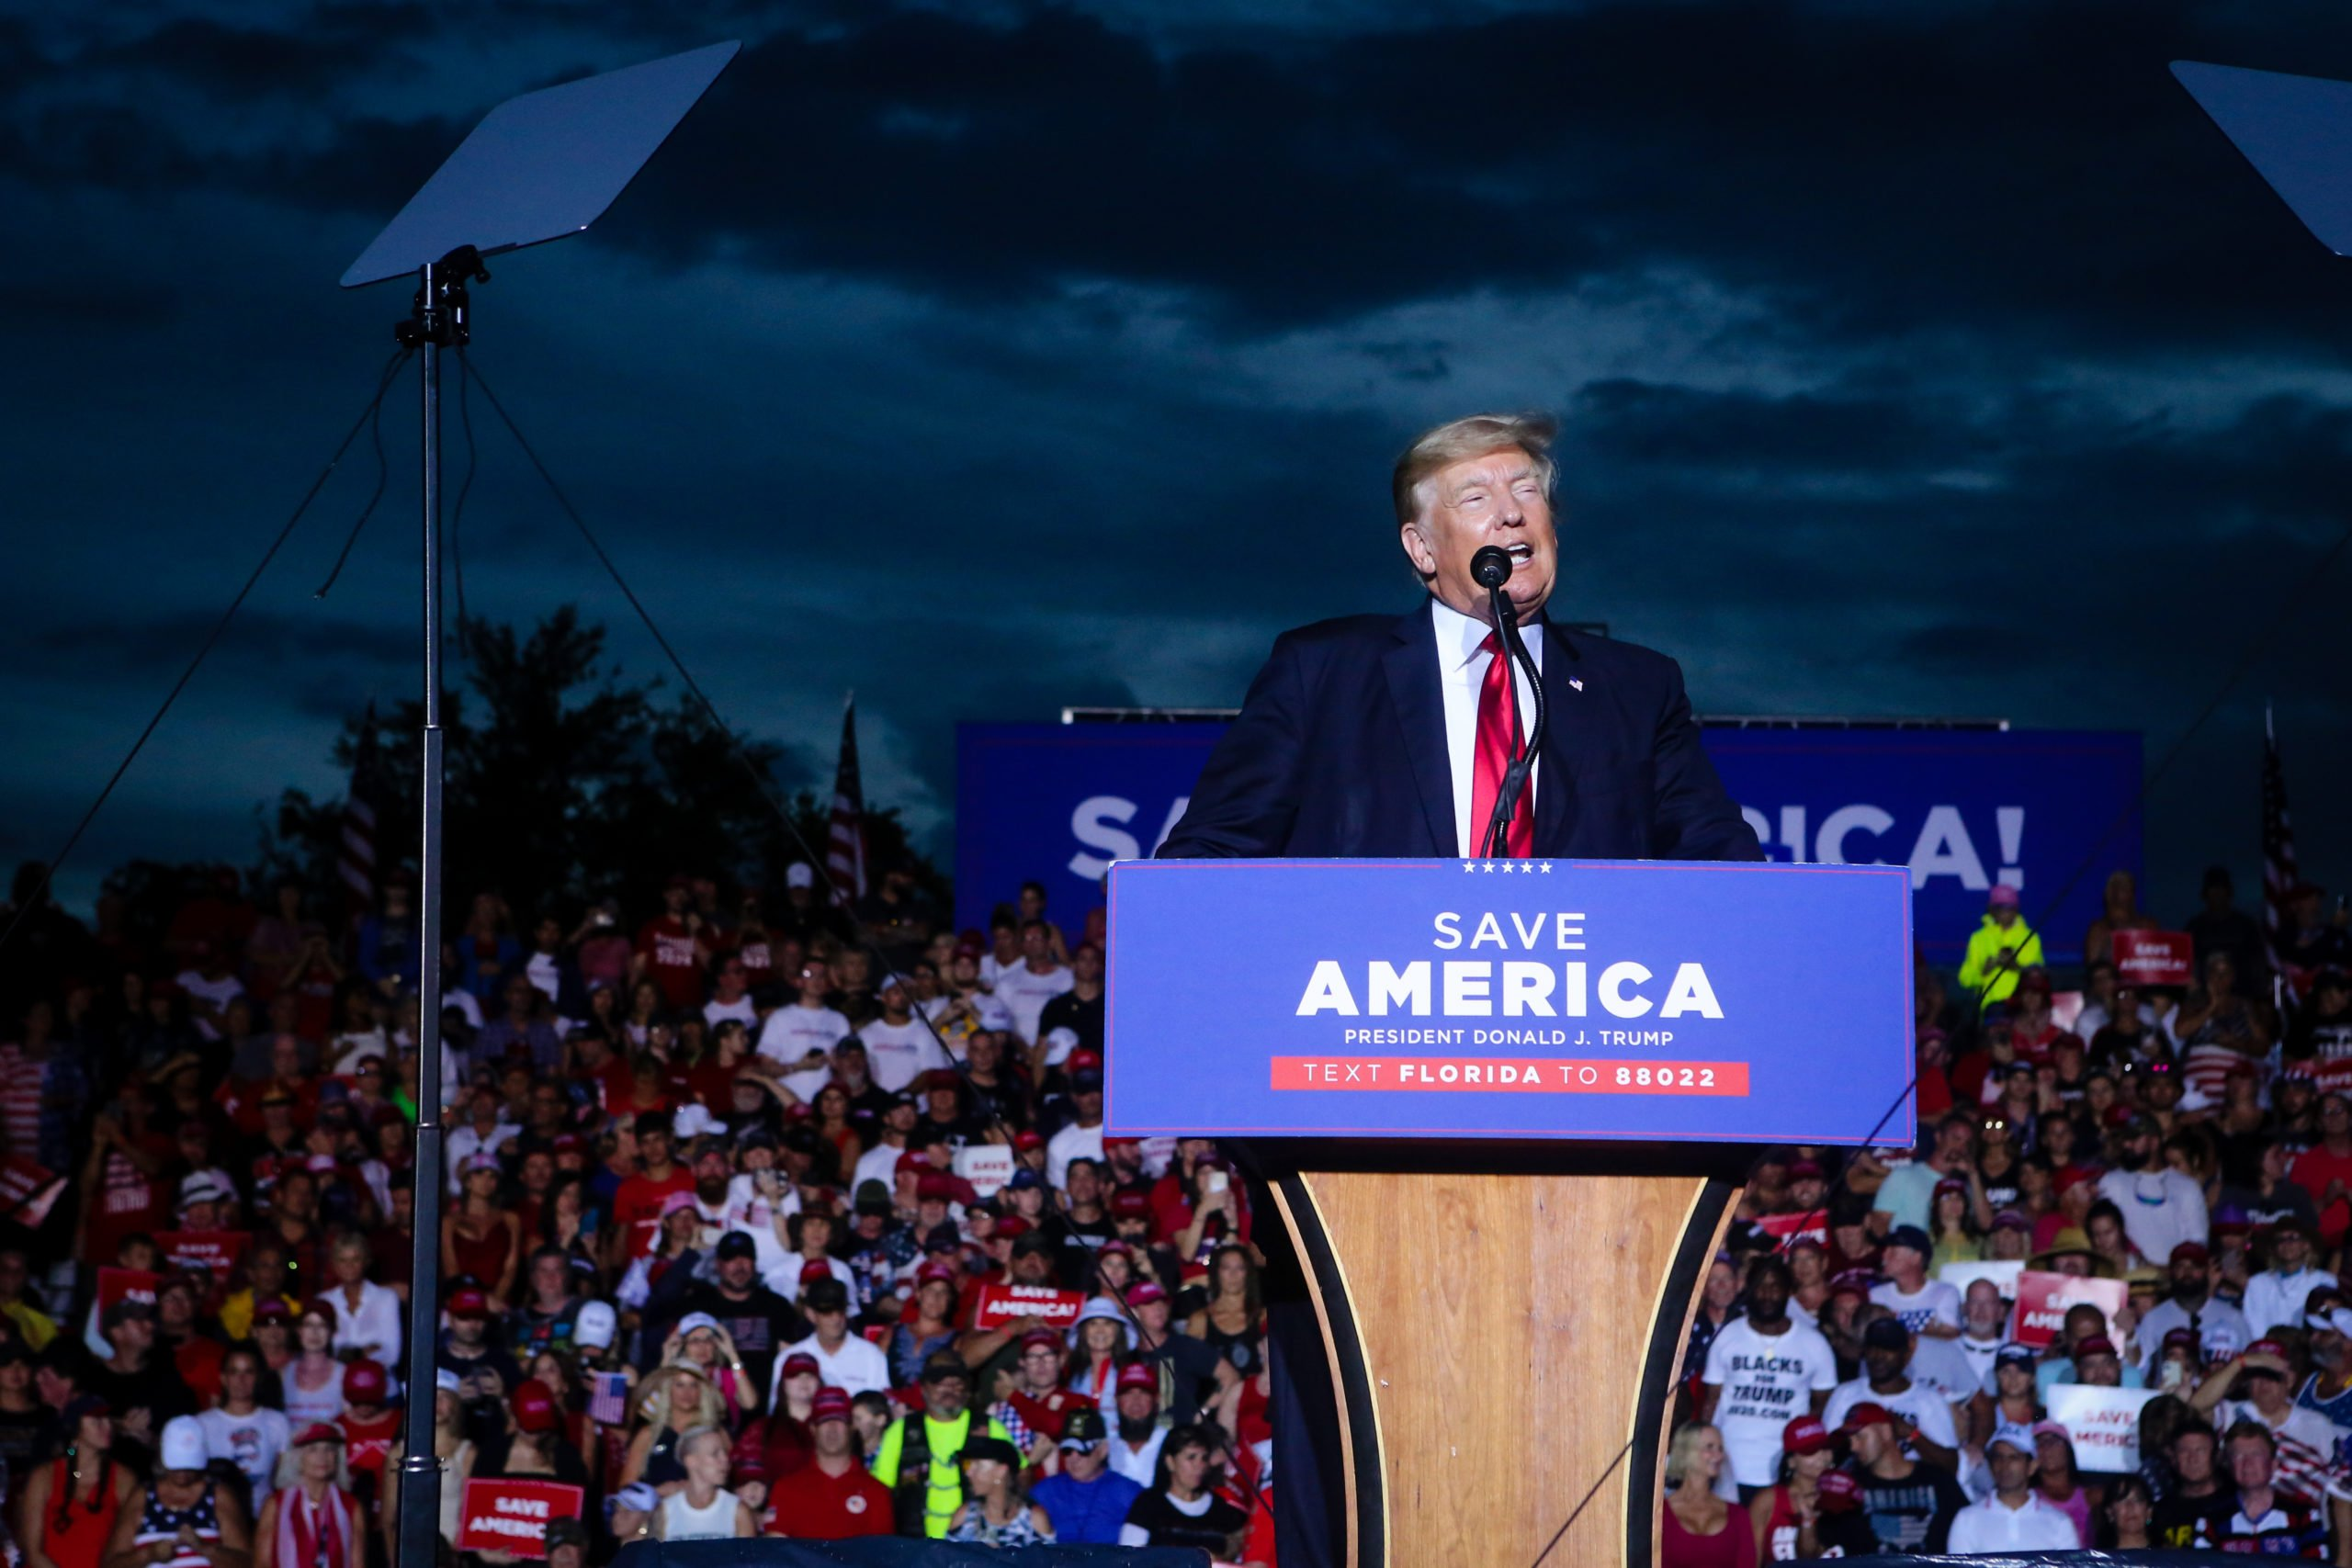 SARASOTA, FL - JULY 03: Former U.S. President Donald Trump speaks during a rally on July 3, 2021 in Sarasota, Florida. Co-sponsored by the Republican Party of Florida, the rally marks Trump's further support of the MAGA agenda and accomplishments of his administration. (Photo by Eva Marie Uzcategui/Getty Images)